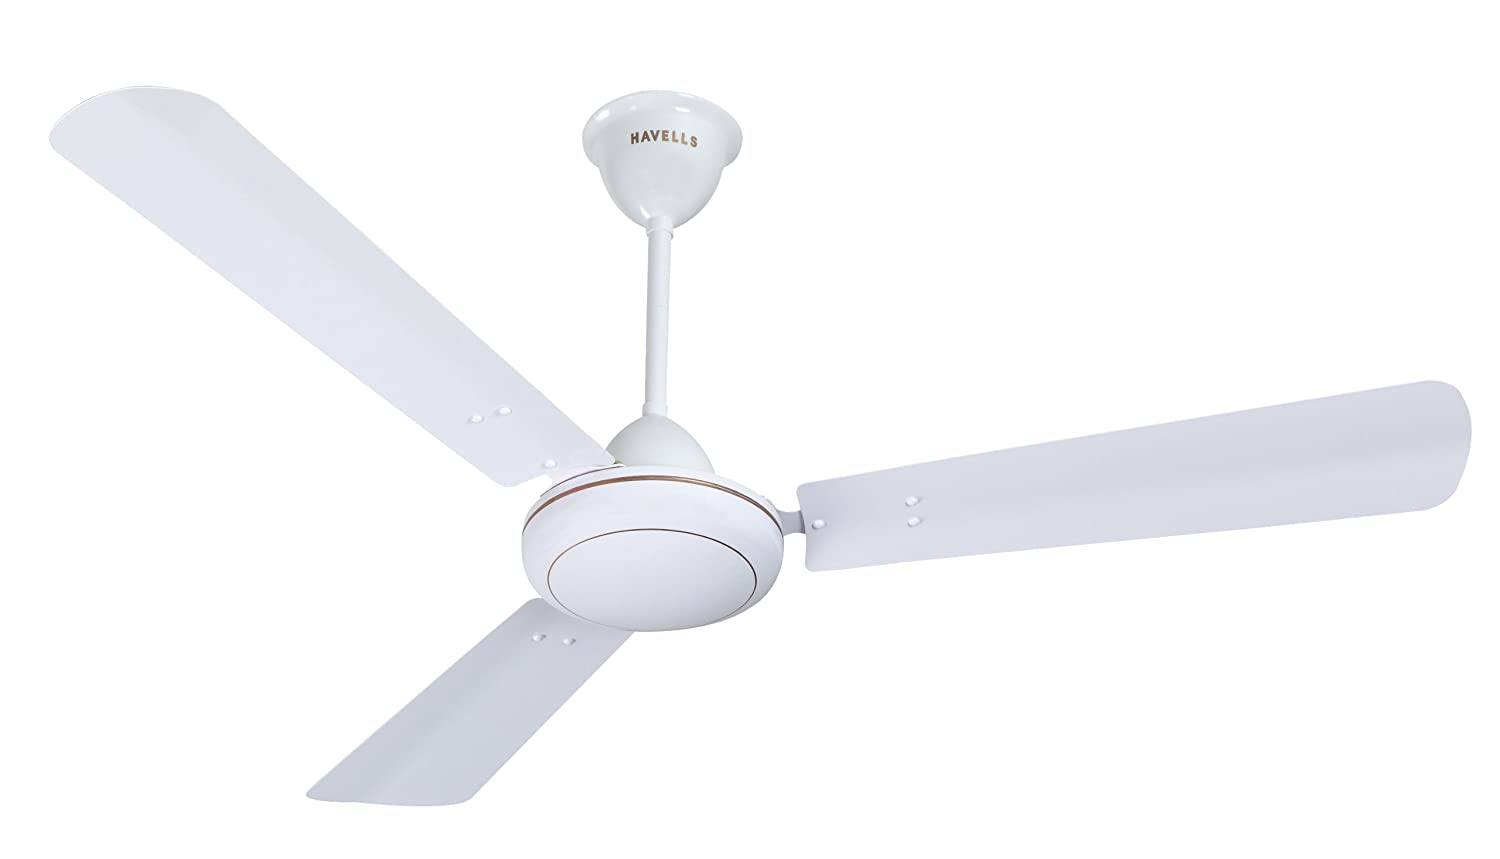 Havells SS 390 900mm 68 Watt Ceiling Fan White Available